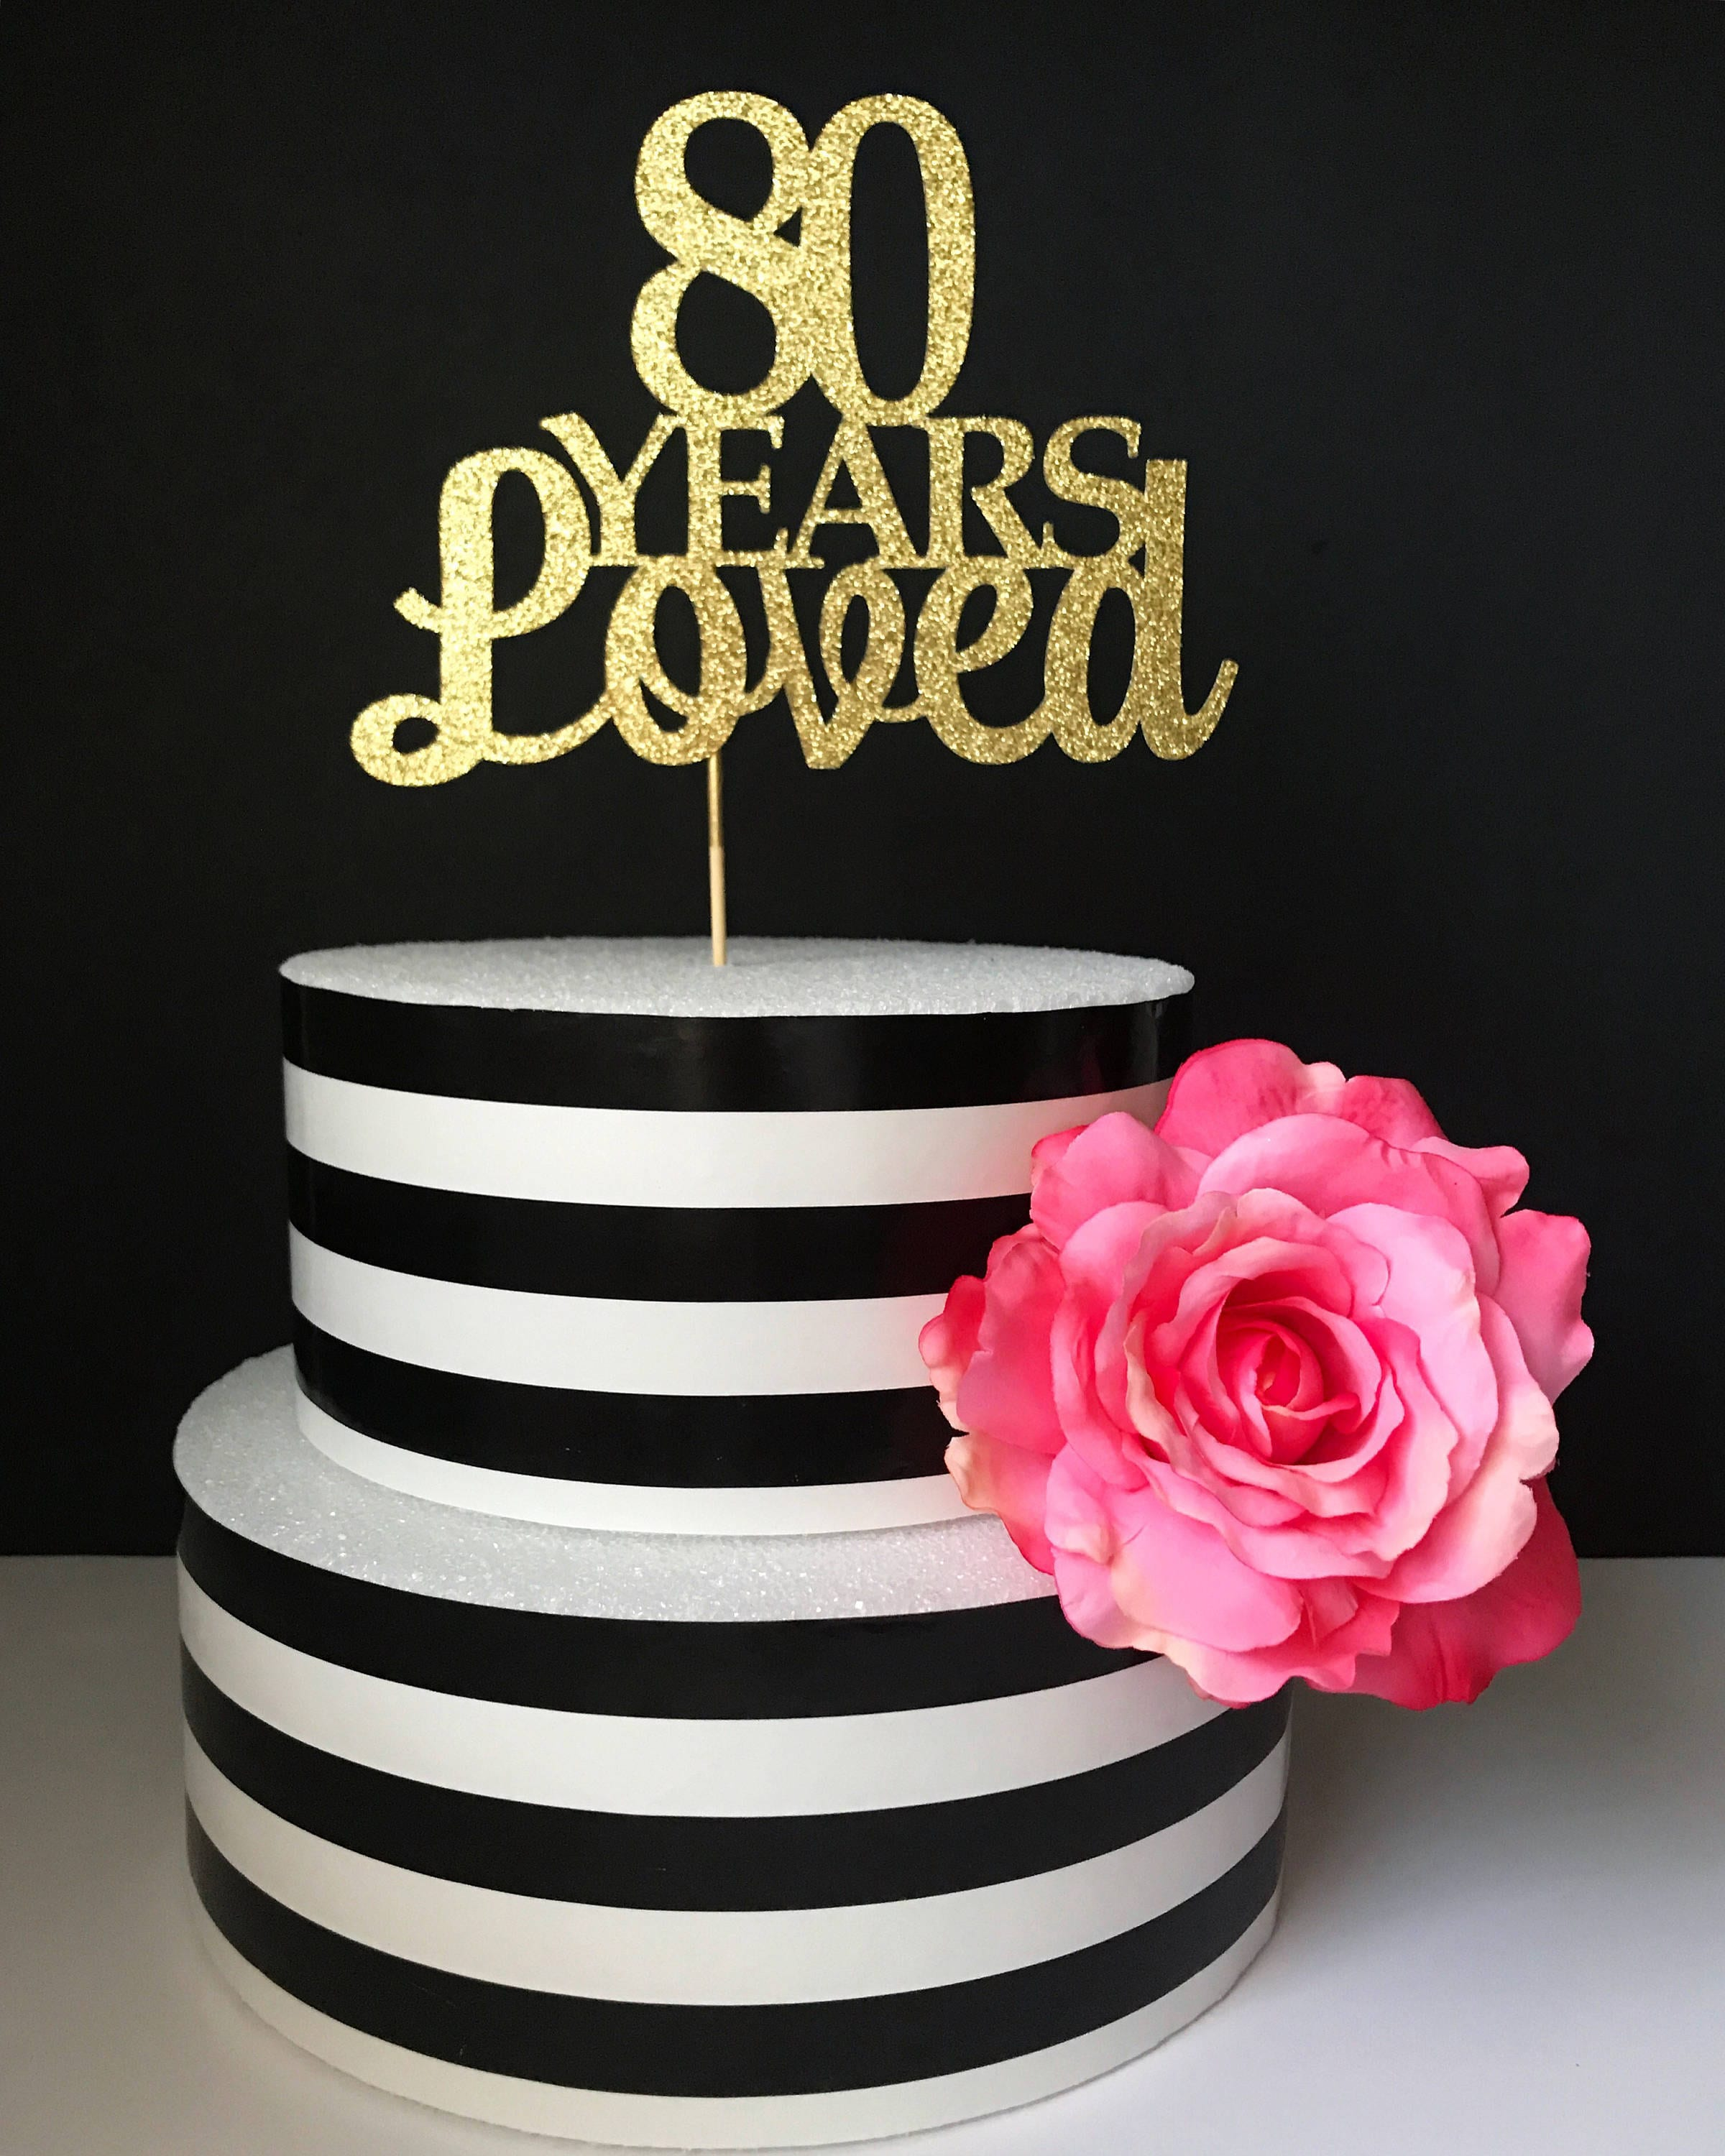 80th Birthday Cake Topper 80 Years Loved